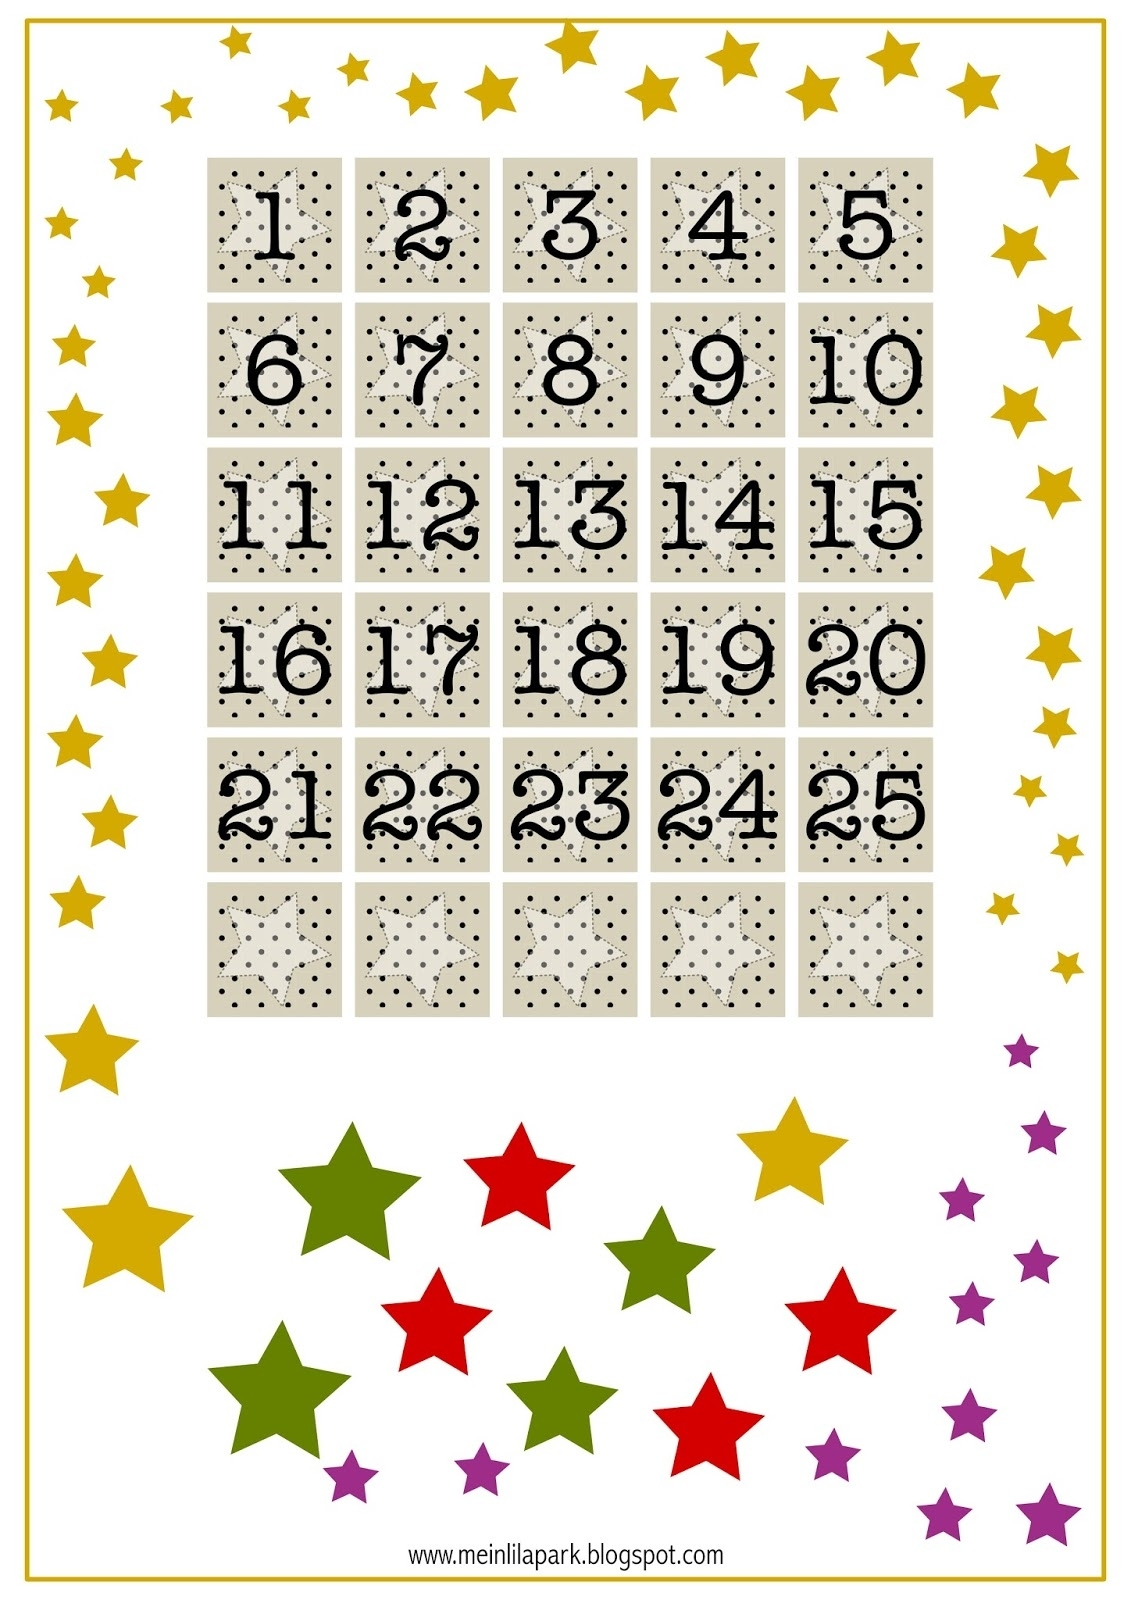 Free Printable Advent Calendar Numbers - Ausdruckbarer within Advent Calendar Printable Numbers Calendar Template